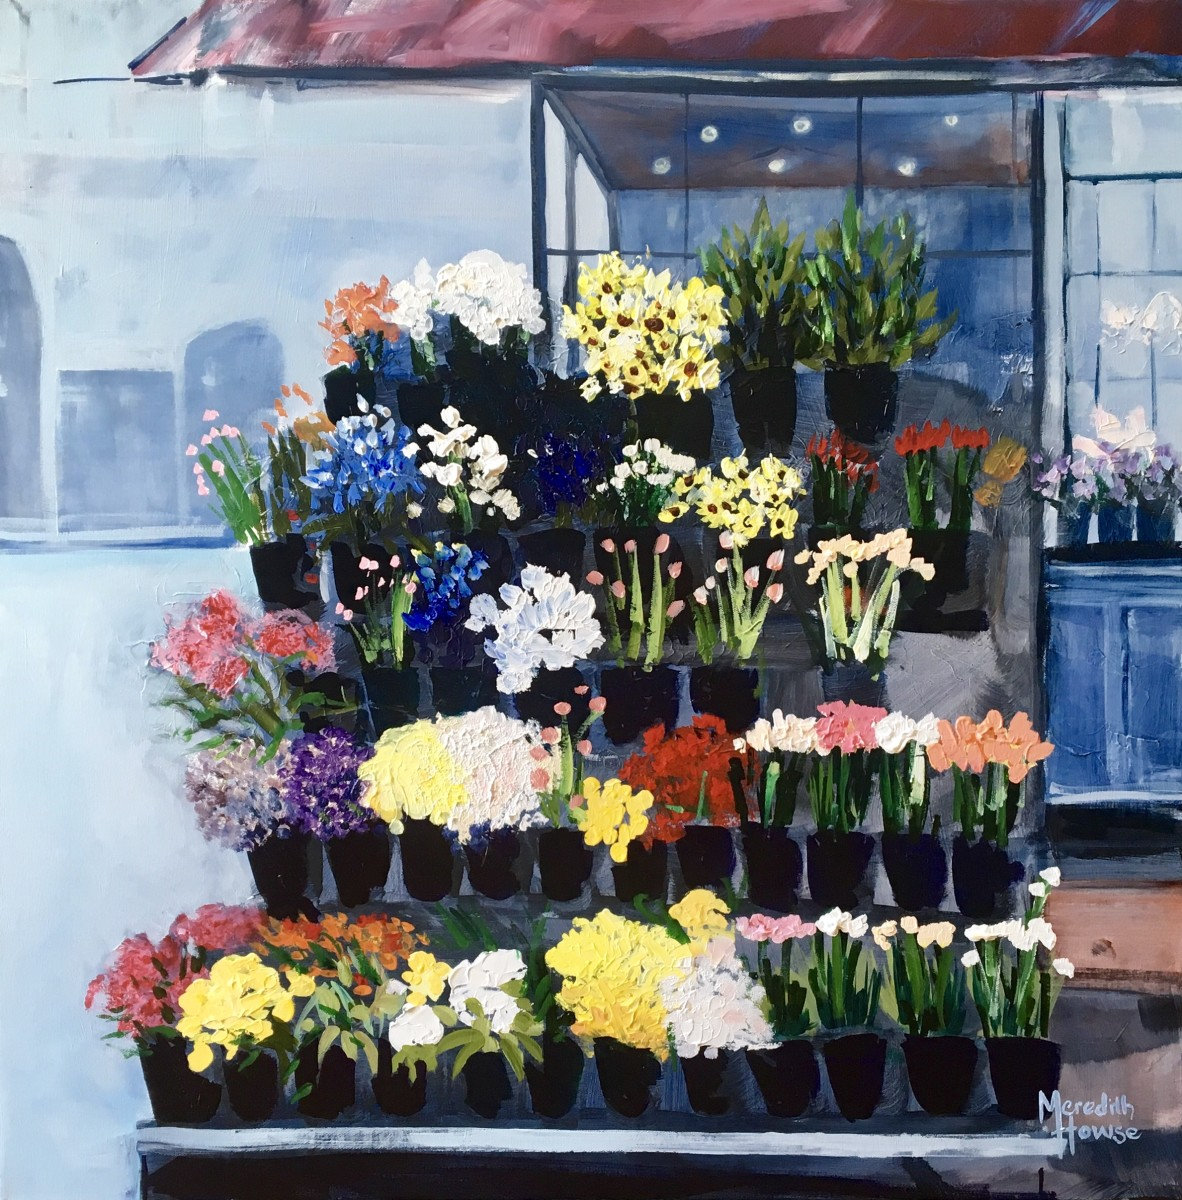 Melbourne Street Flowers by Meredith Howse